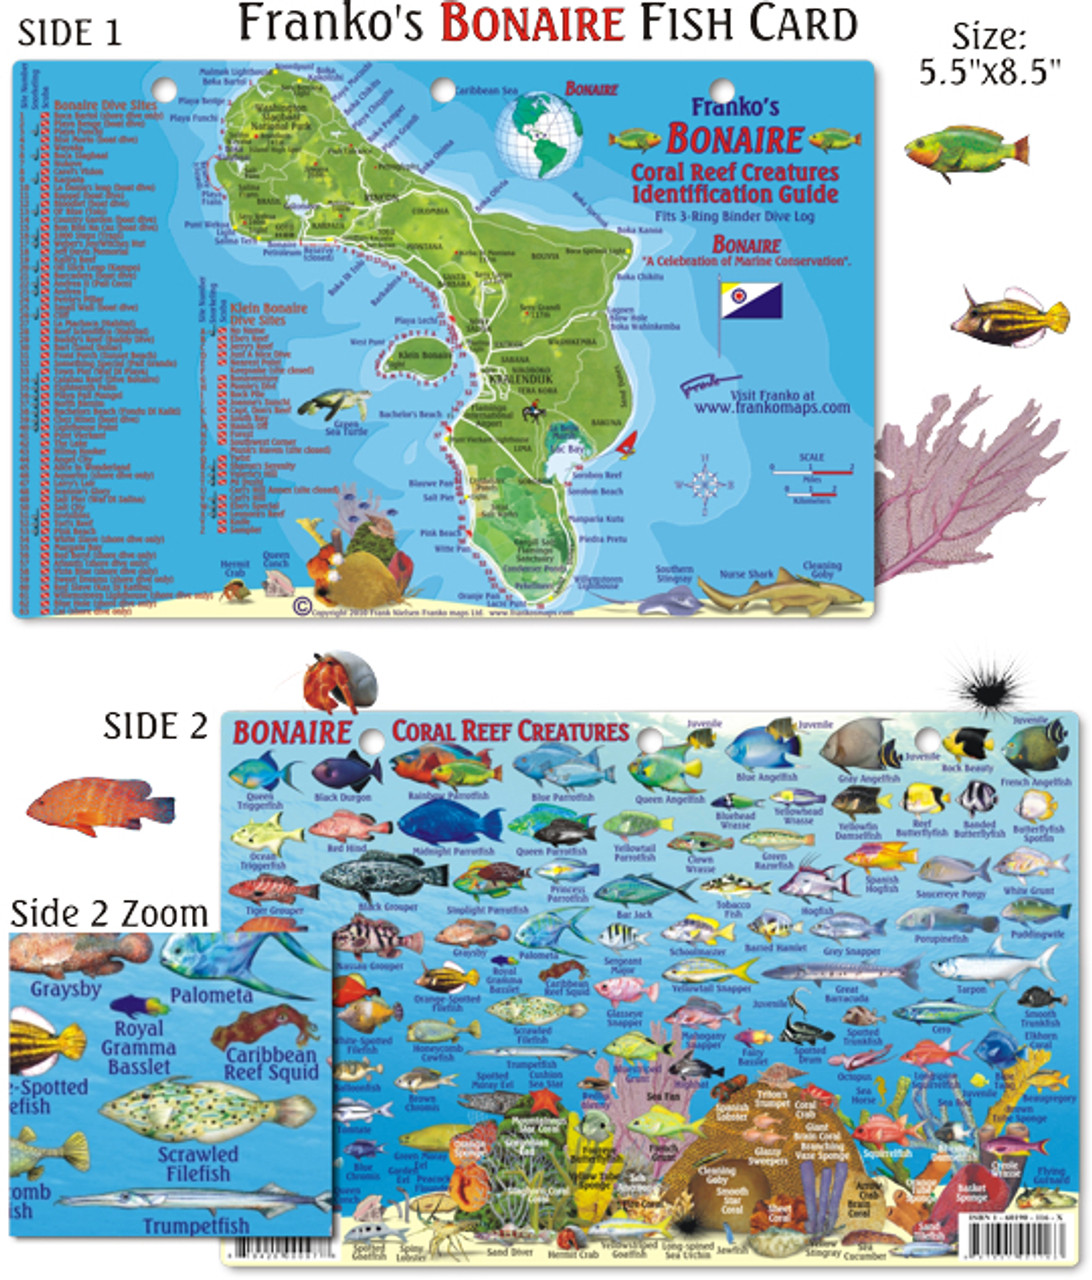 bonaire reef creatures identification guide fish card mail order